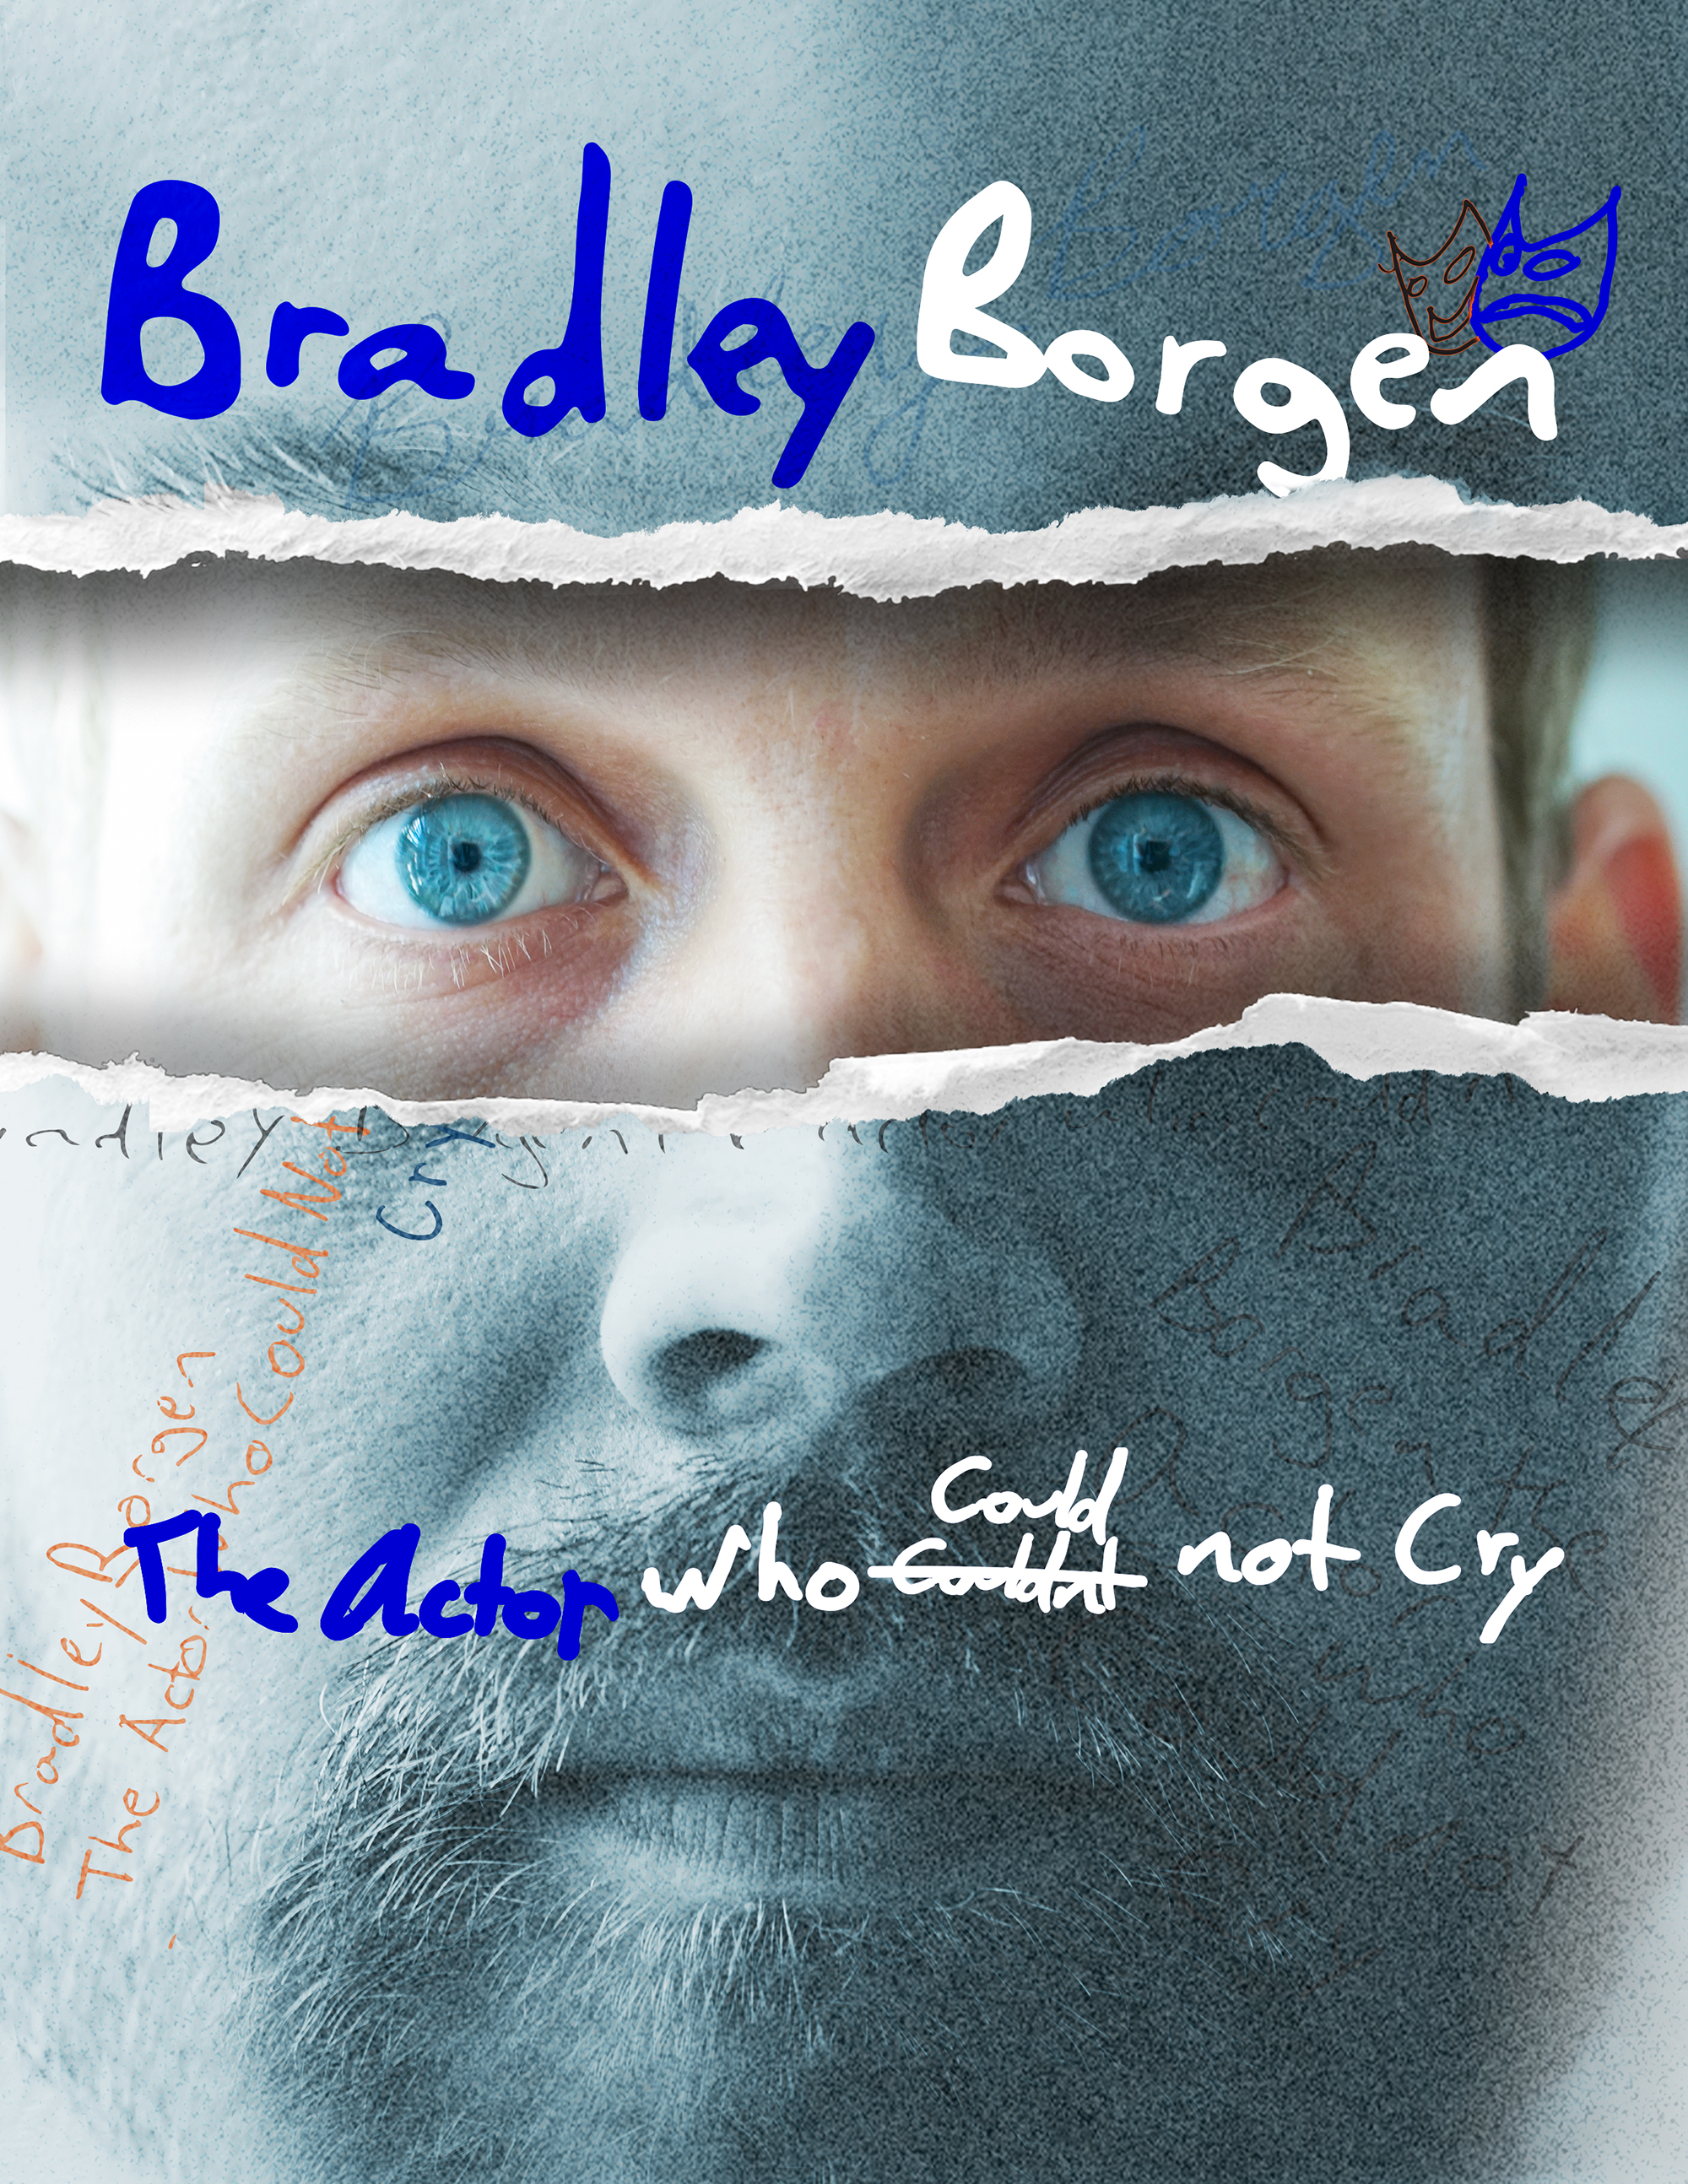 Bradley Borgen:The Actor Who Could Not Cry - In this episodic dramedy, we follow BRADLEY BORGEN, an actor and single everyman, as he tries desperately to pursue an unattainable dream in an increasingly absurd world. Bradley wants nothing more than a career in the often challenging and elusive movie industry, but his inability to cry hinders his success at every turn. Or so he thinks... Each episode takes us further and further through Bradley's comic and tragic attempts to weep. He engages therapists, doctors, acting teachers, and random hook-ups. Will anything stick? In the background, his best friend Jeffrey helps to guide him in the right direction. But Bradley is always turning left when he should be turning right.Learn More